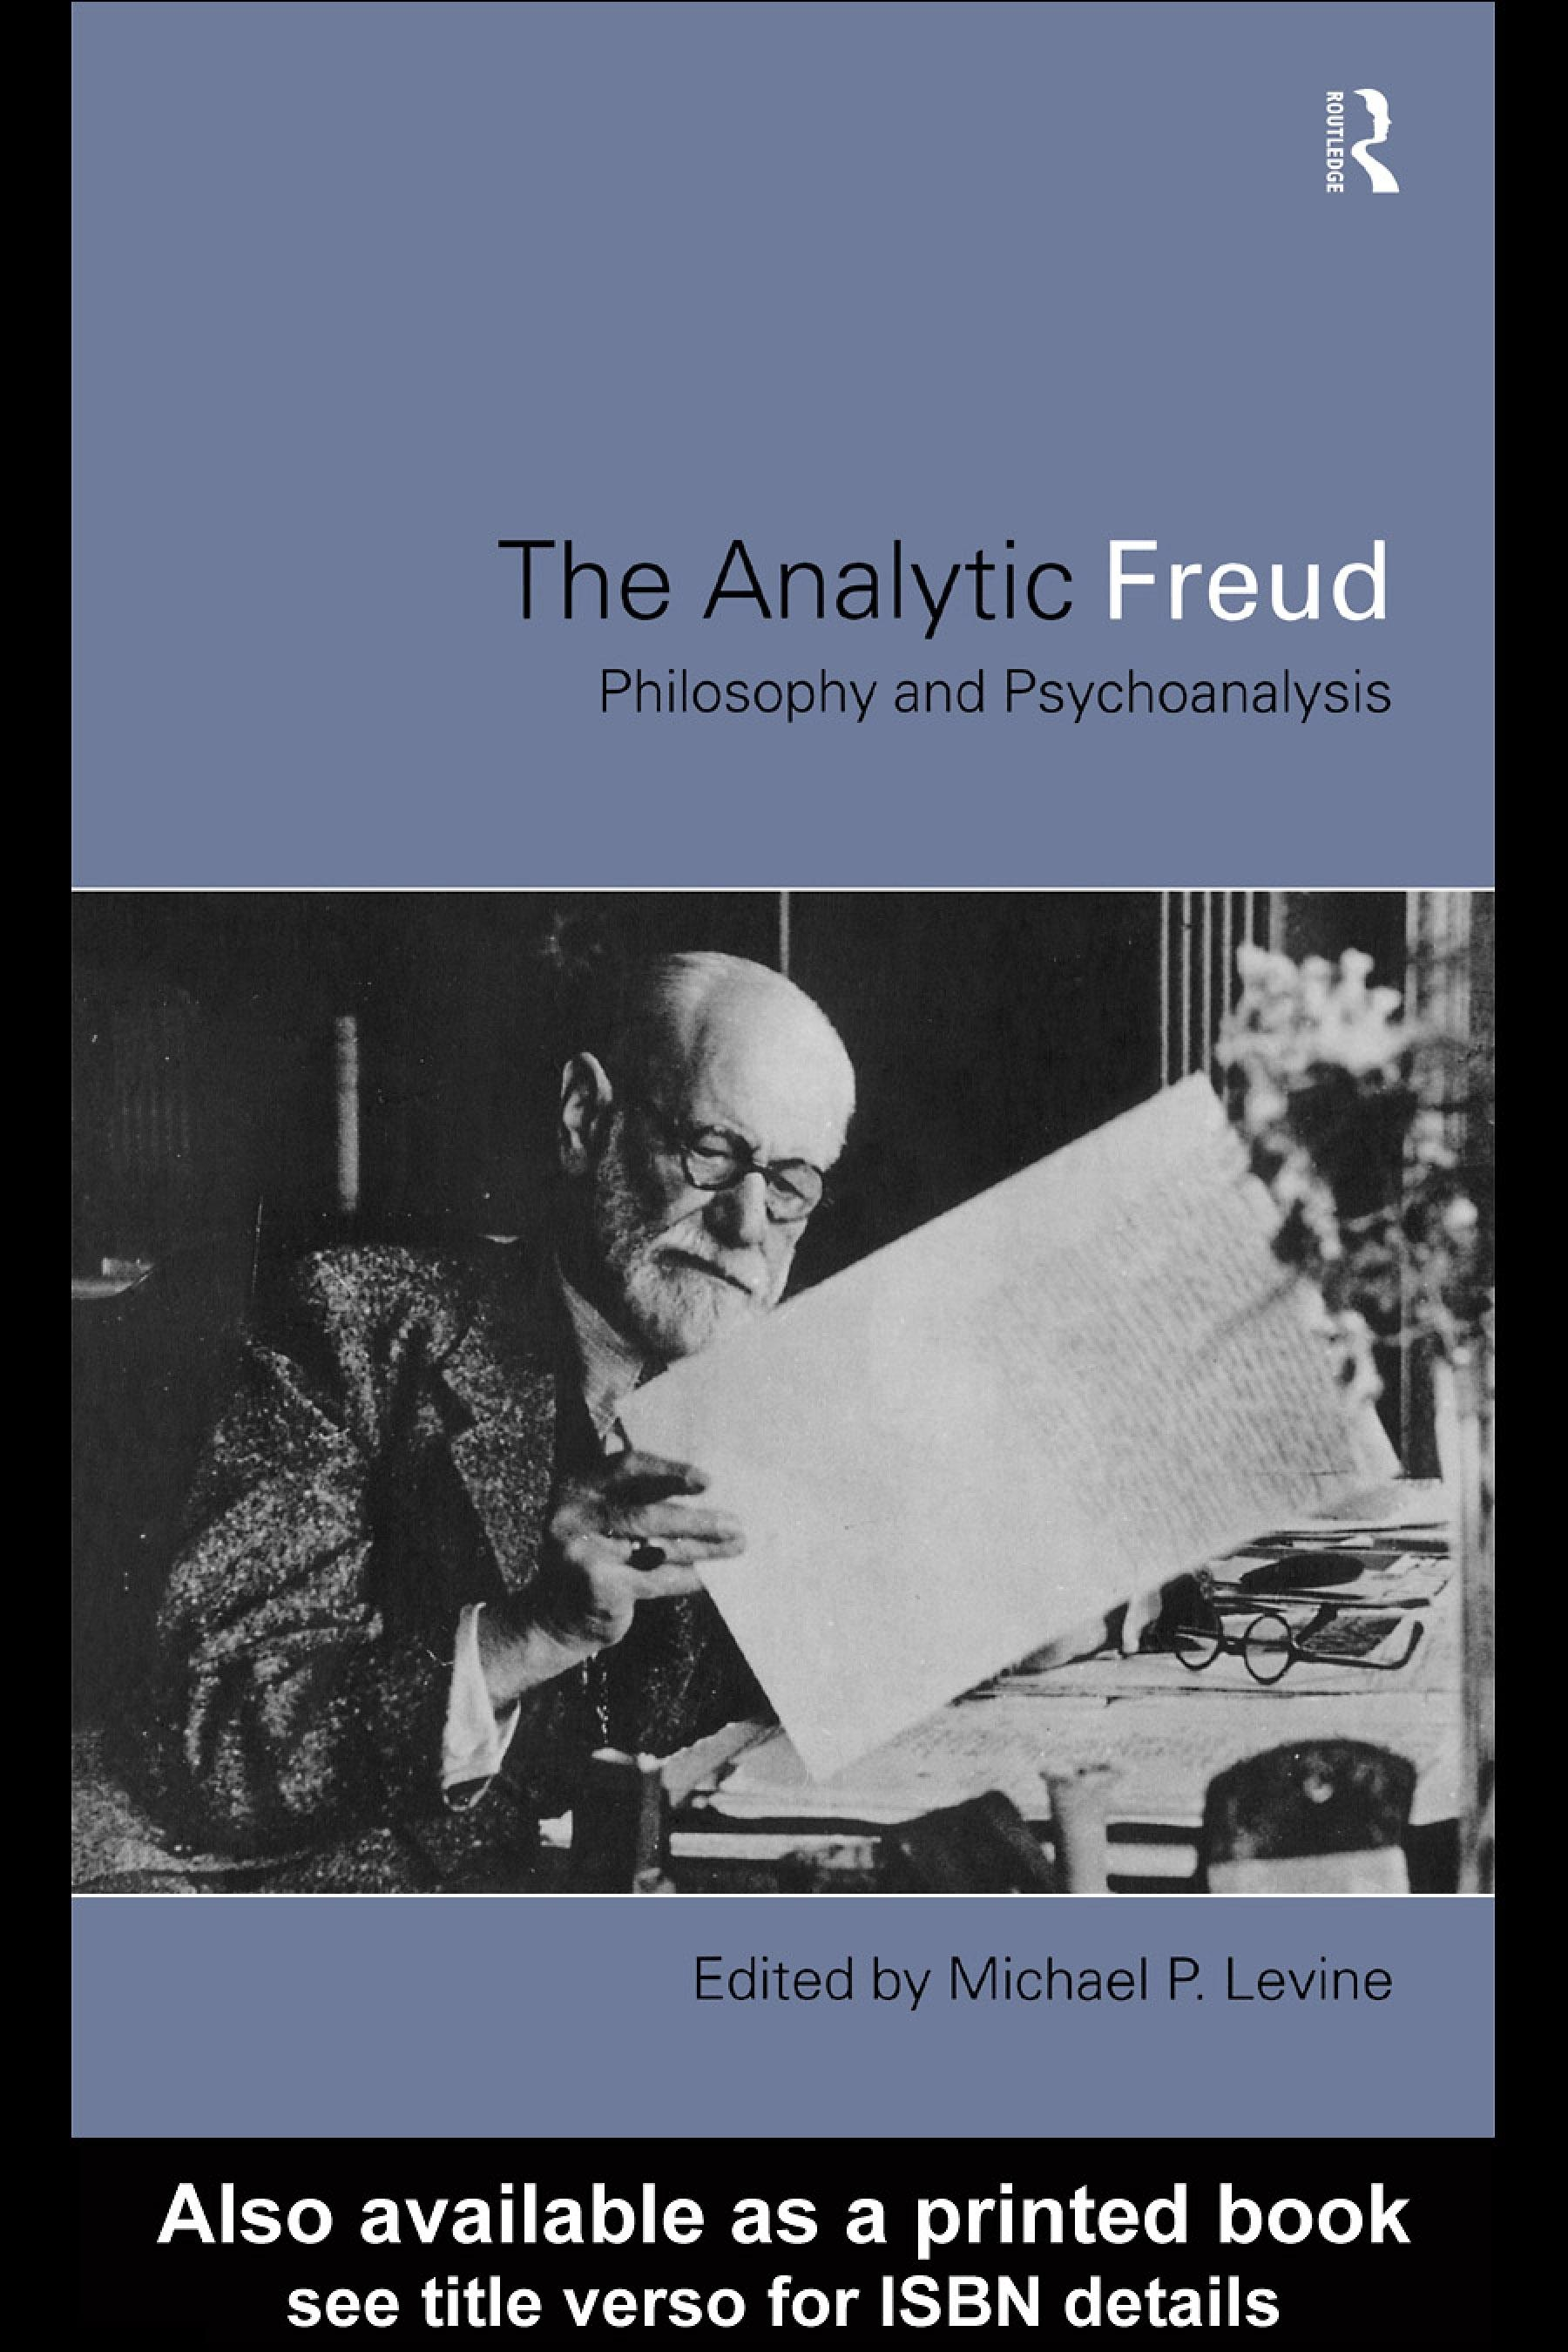 Analytic Freud: Philosophy and Psychoanalysis